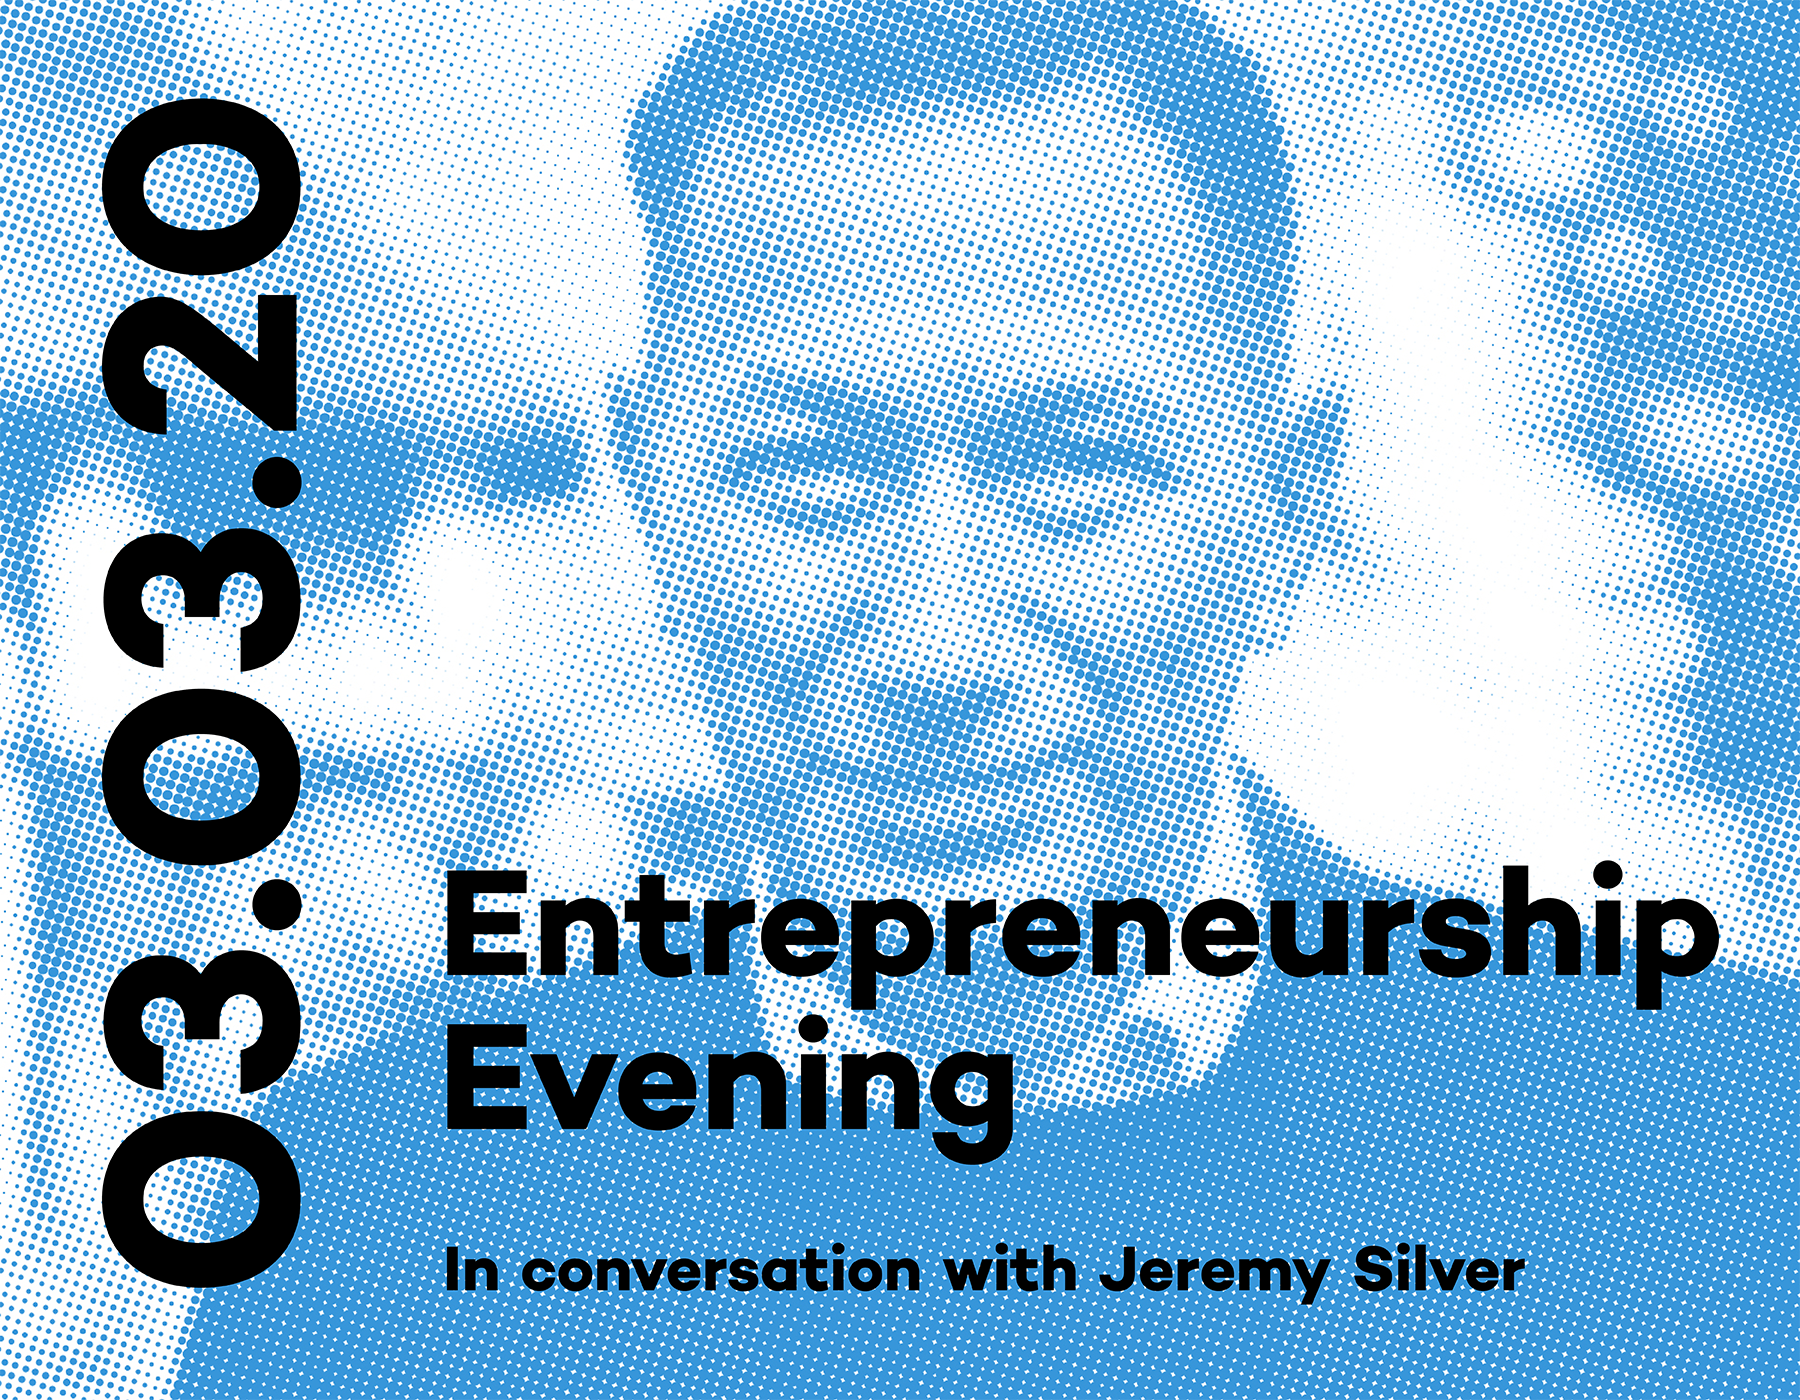 Entrepreneurship Evening: In conversation with Jeremy Silver